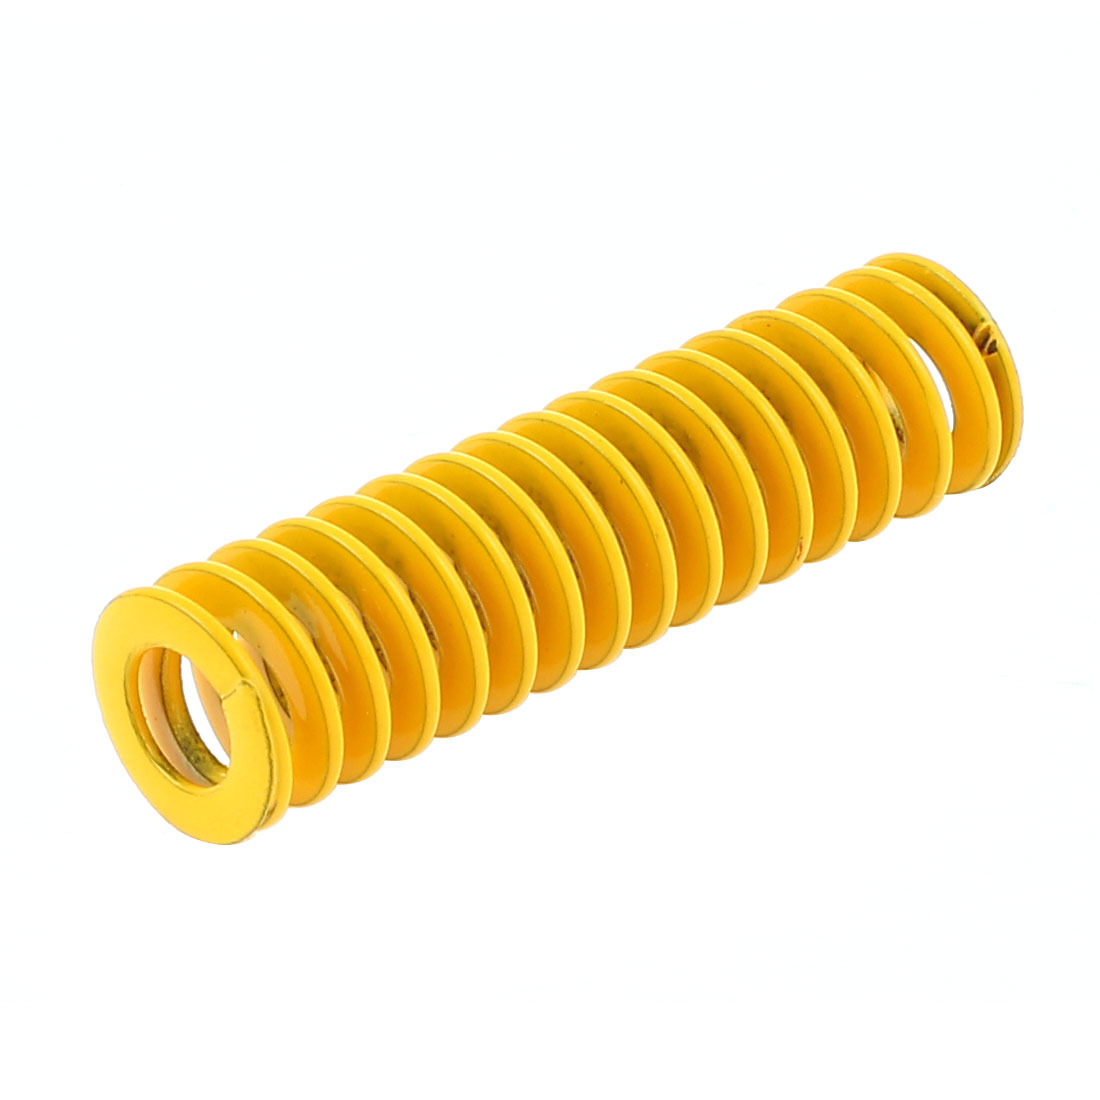 12x6x45mm Yellow Chromium Alloy Steel Tubular Section Mould Die Spring